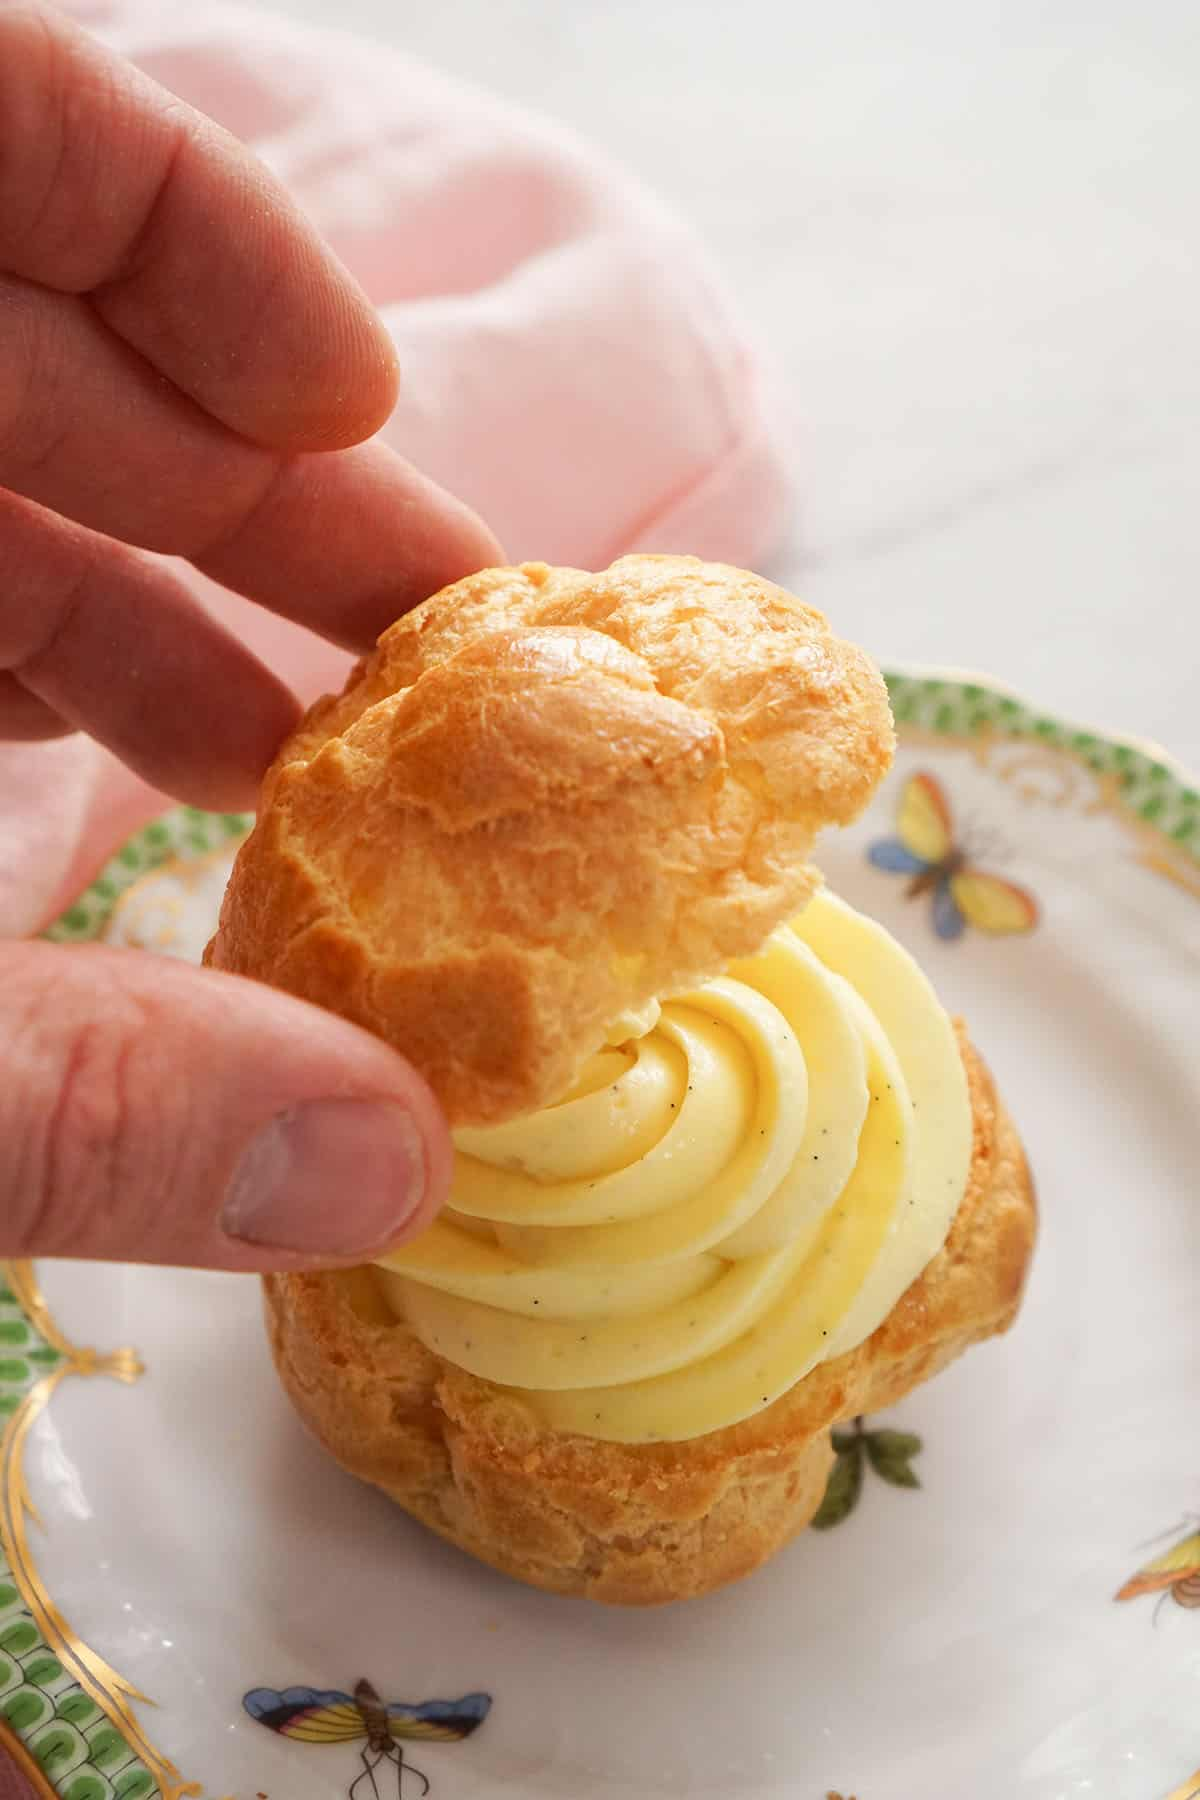 A cream puff getting assembled with piped pastry cream.